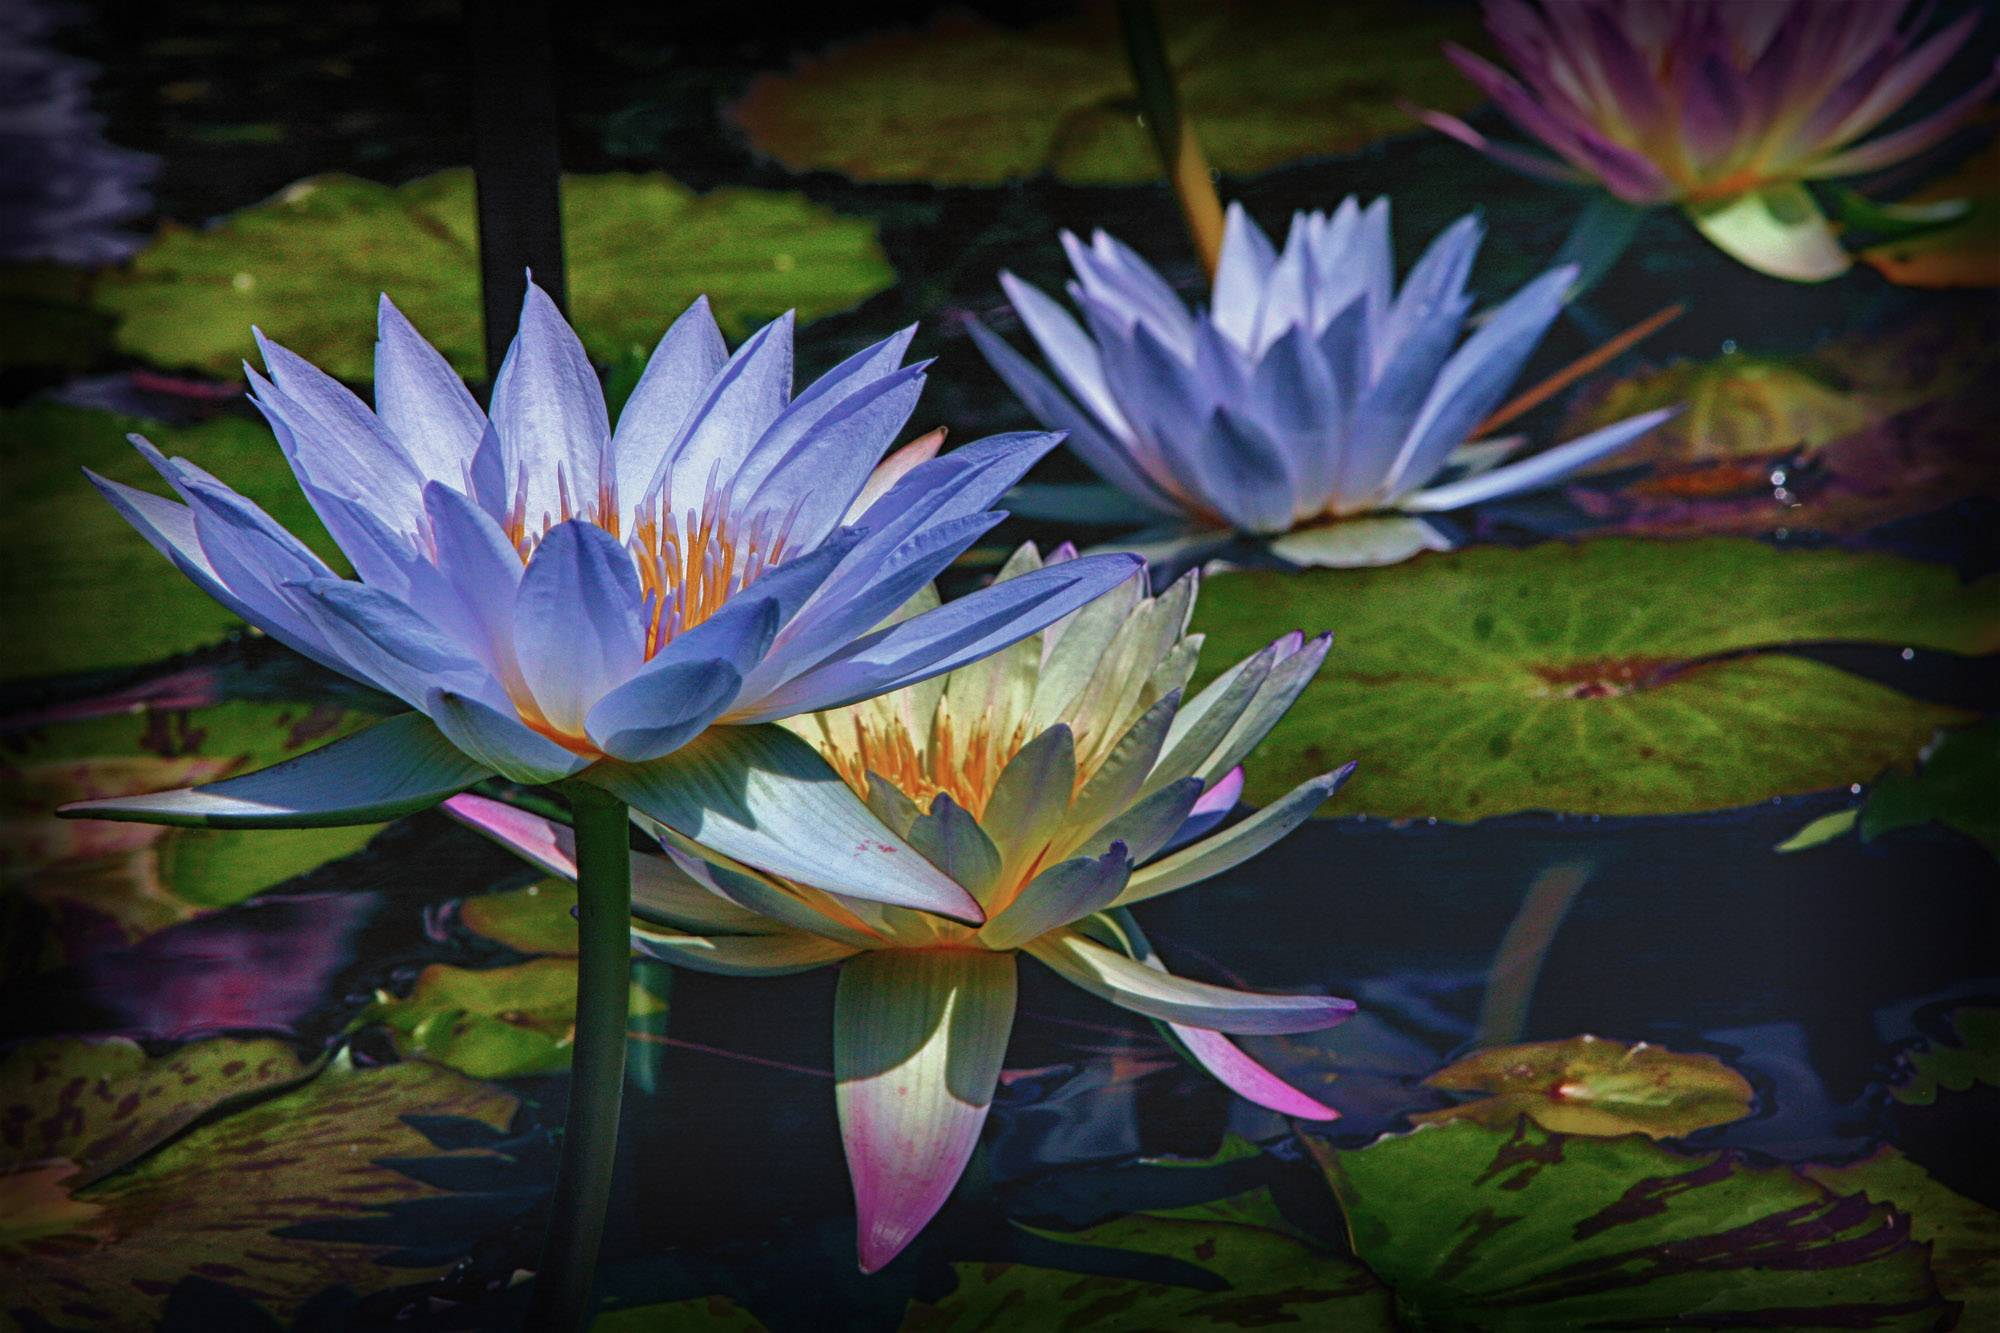 Water lilies at the Chicago Botanical Gardens in Glencoe.